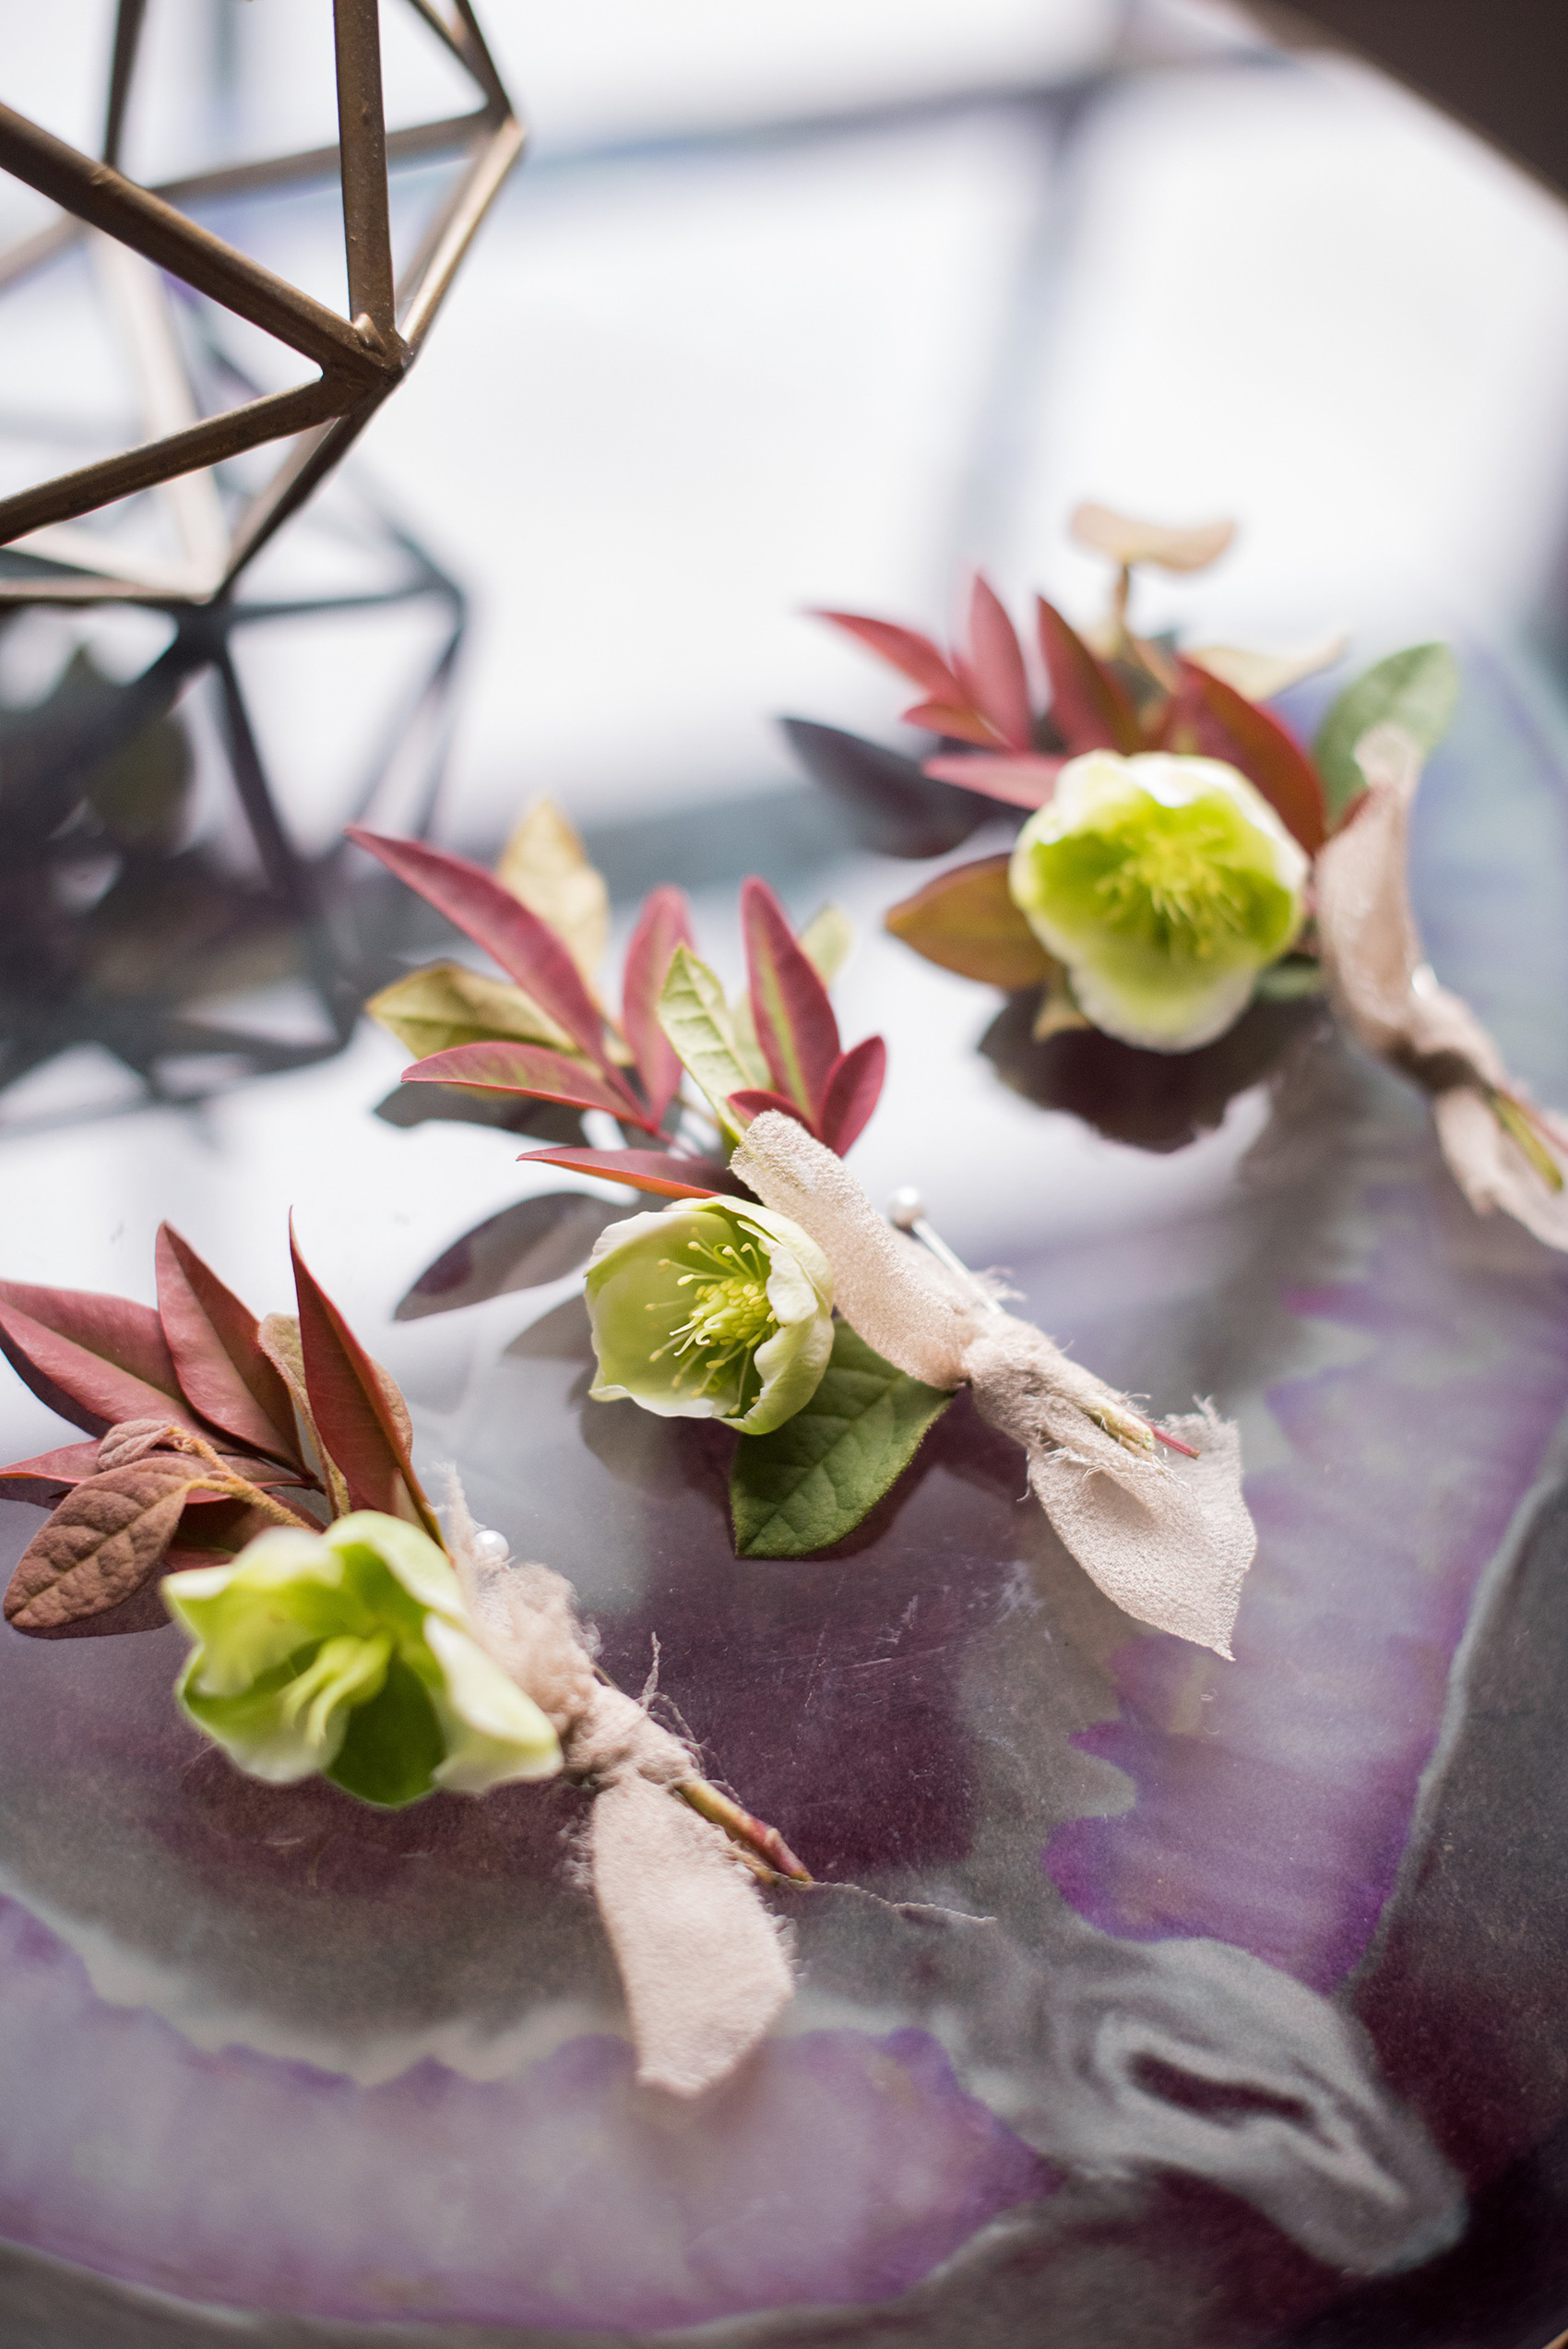 Mikkel Paige Photography photos from a wedding at Leslie-Alford Mims House in North Carolina. Detail picture of the groomsmen's Hellebores boutonnieres with fall foliage and silk ribbon.